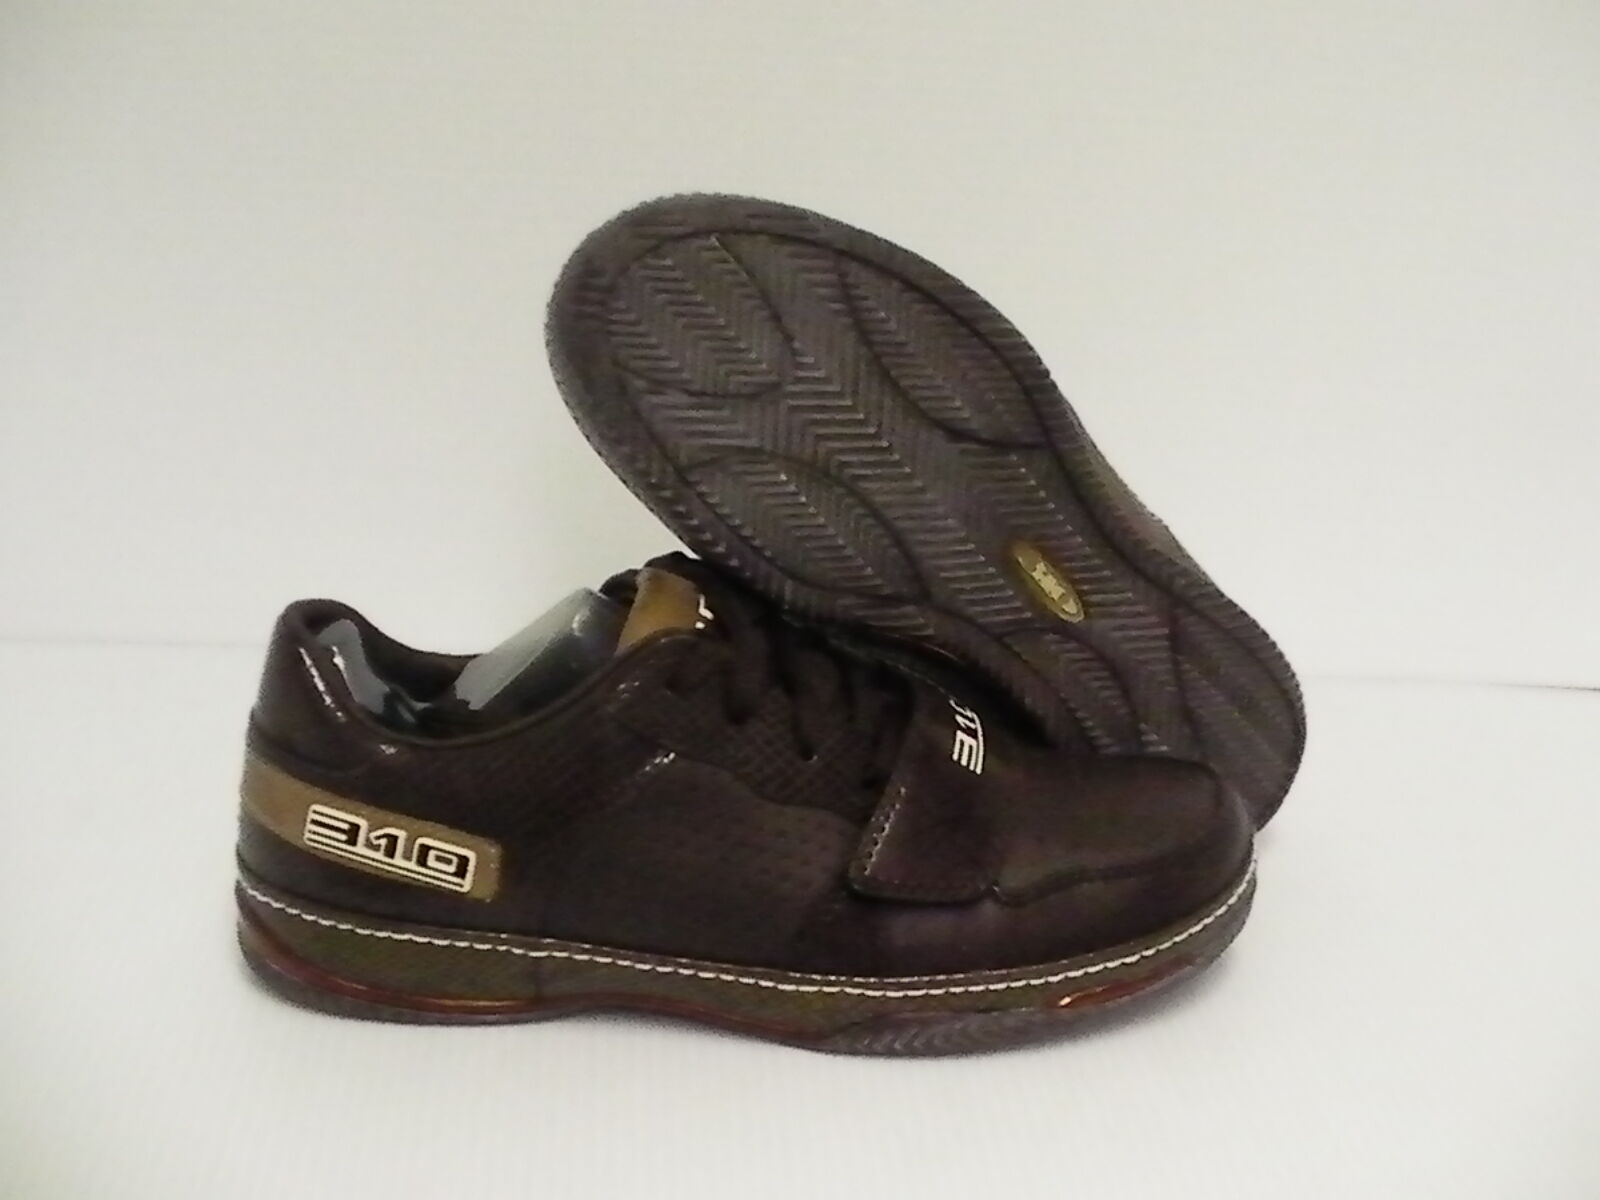 Scarpe casual da uomo  310 motoring casual shoes Histon size 12 us uomo chocolate new